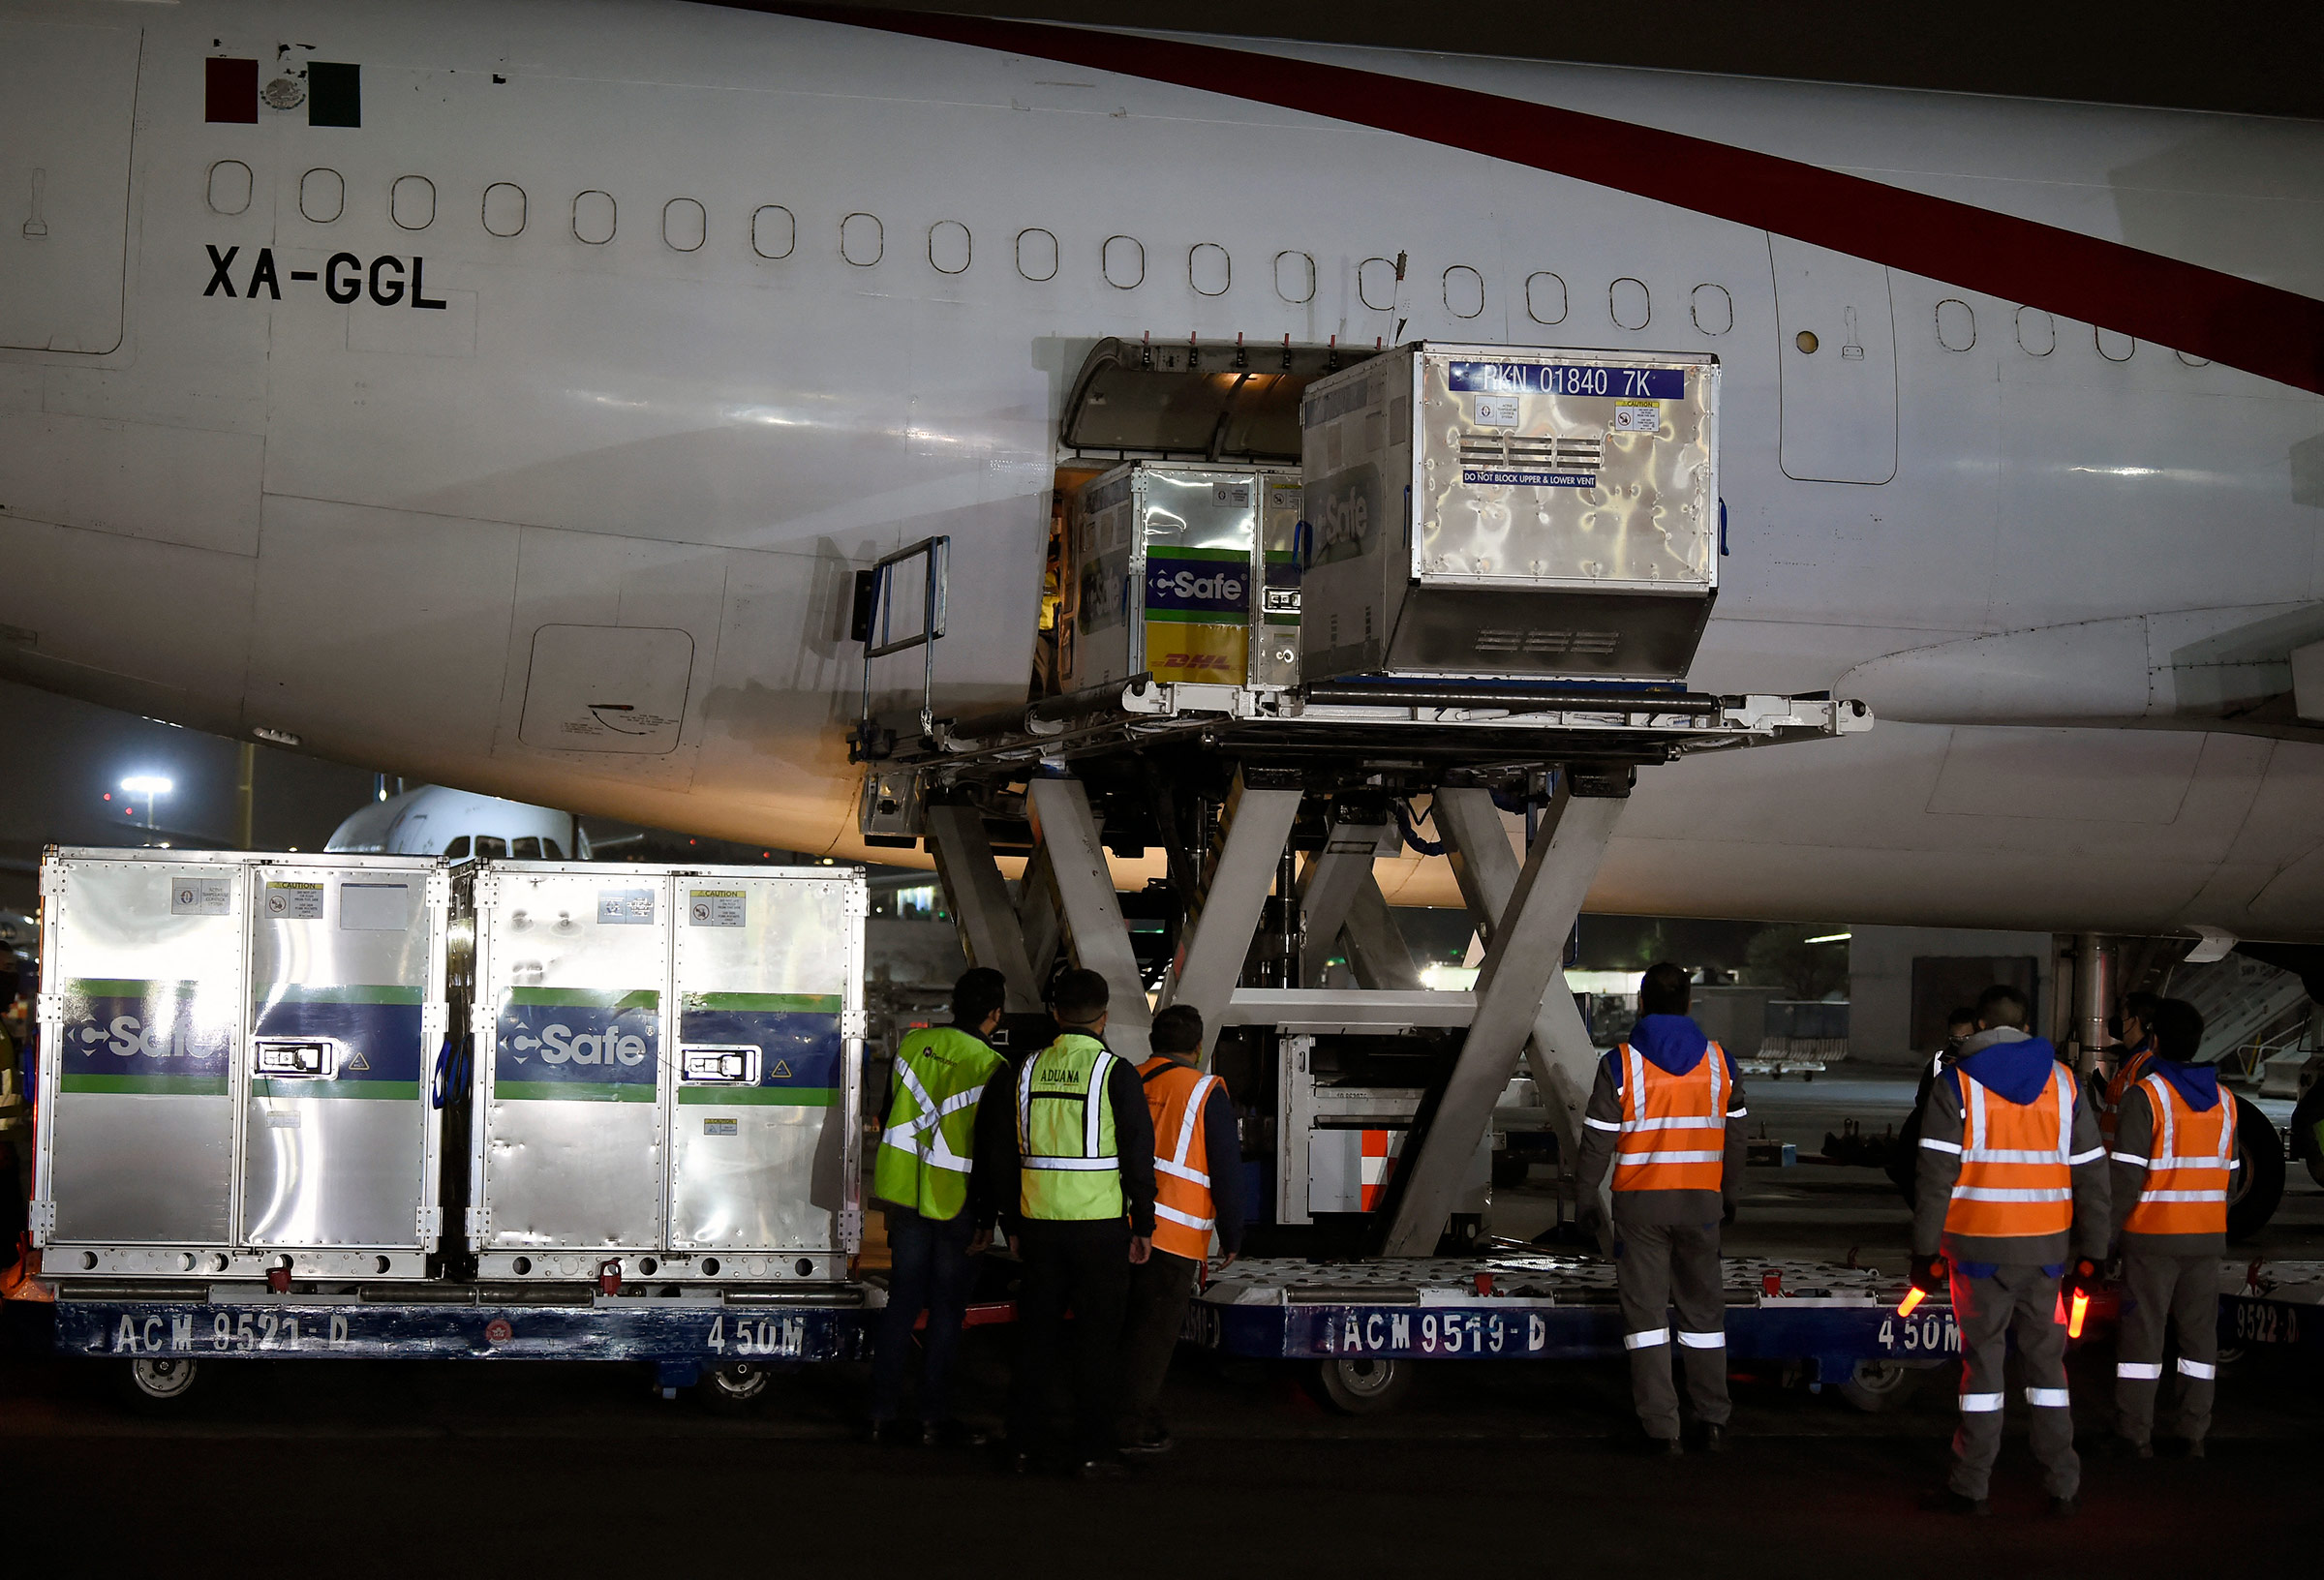 Employees unload shipping containers of the AstraZeneca Covid-19 vaccine at Benito Juarez International Airport in Mexico City, on March 28.